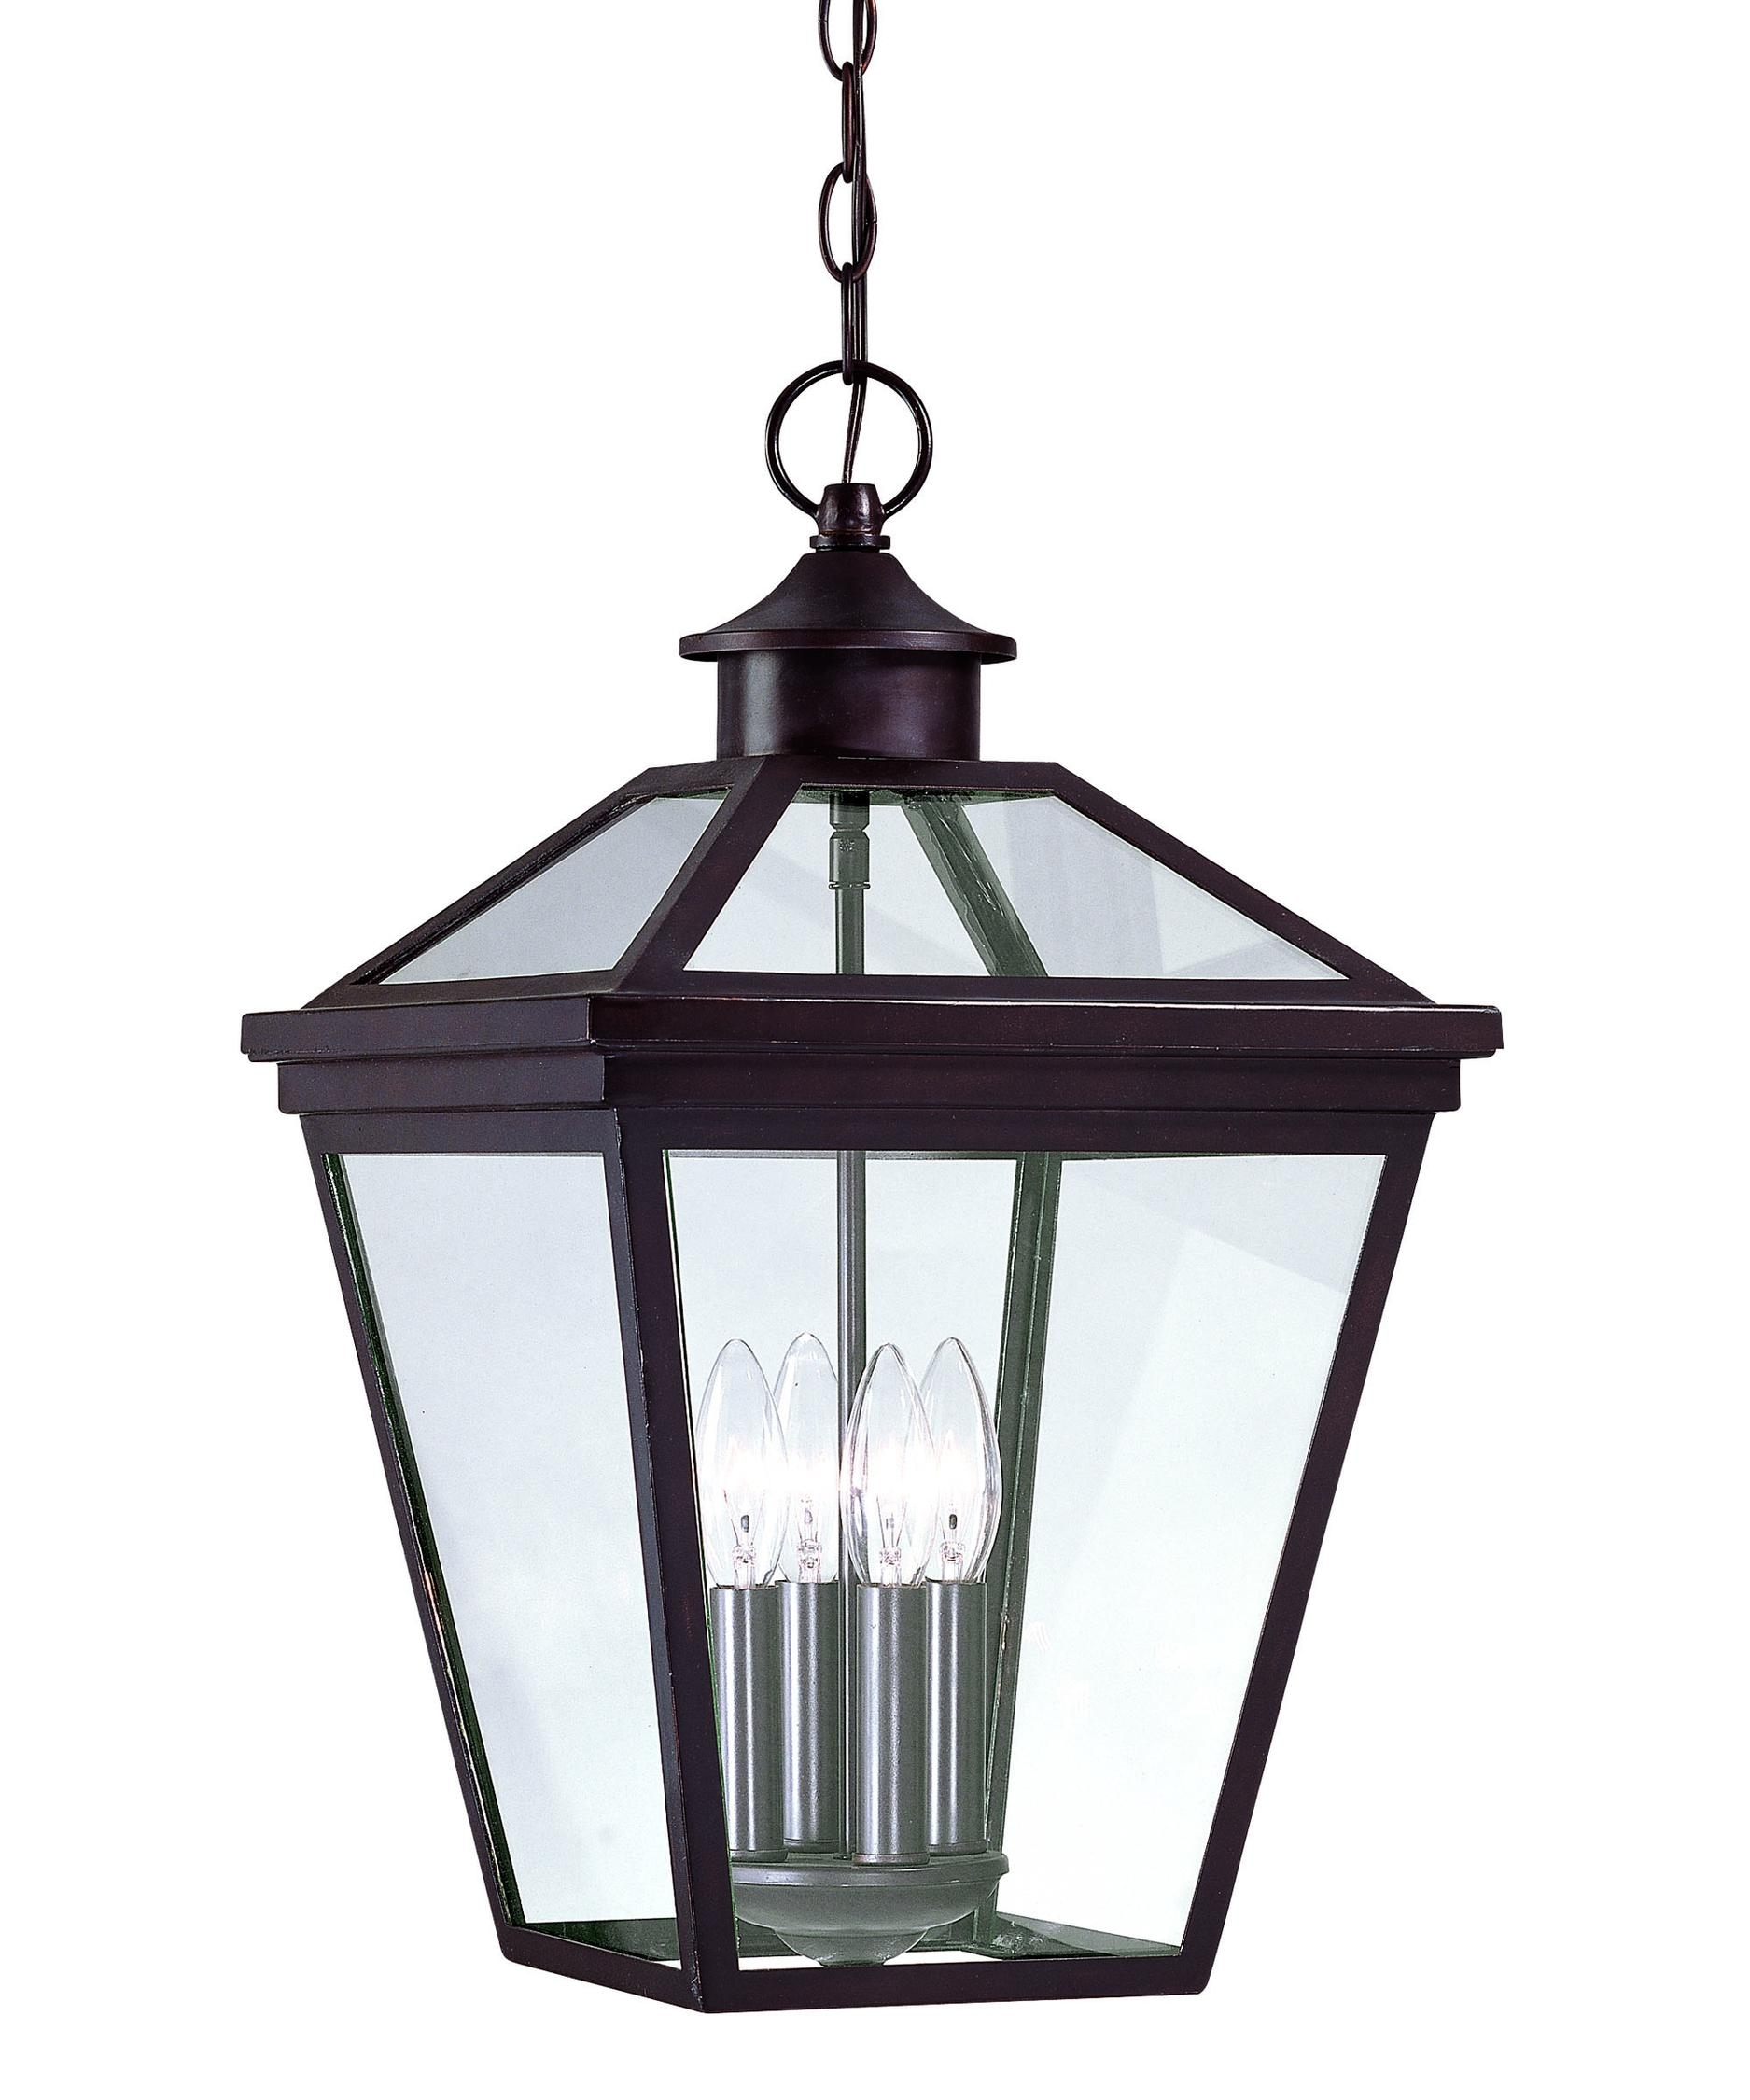 Outdoor Hanging Lanterns – Nurani With Regard To Outdoor Hanging Patio Lanterns (View 10 of 15)